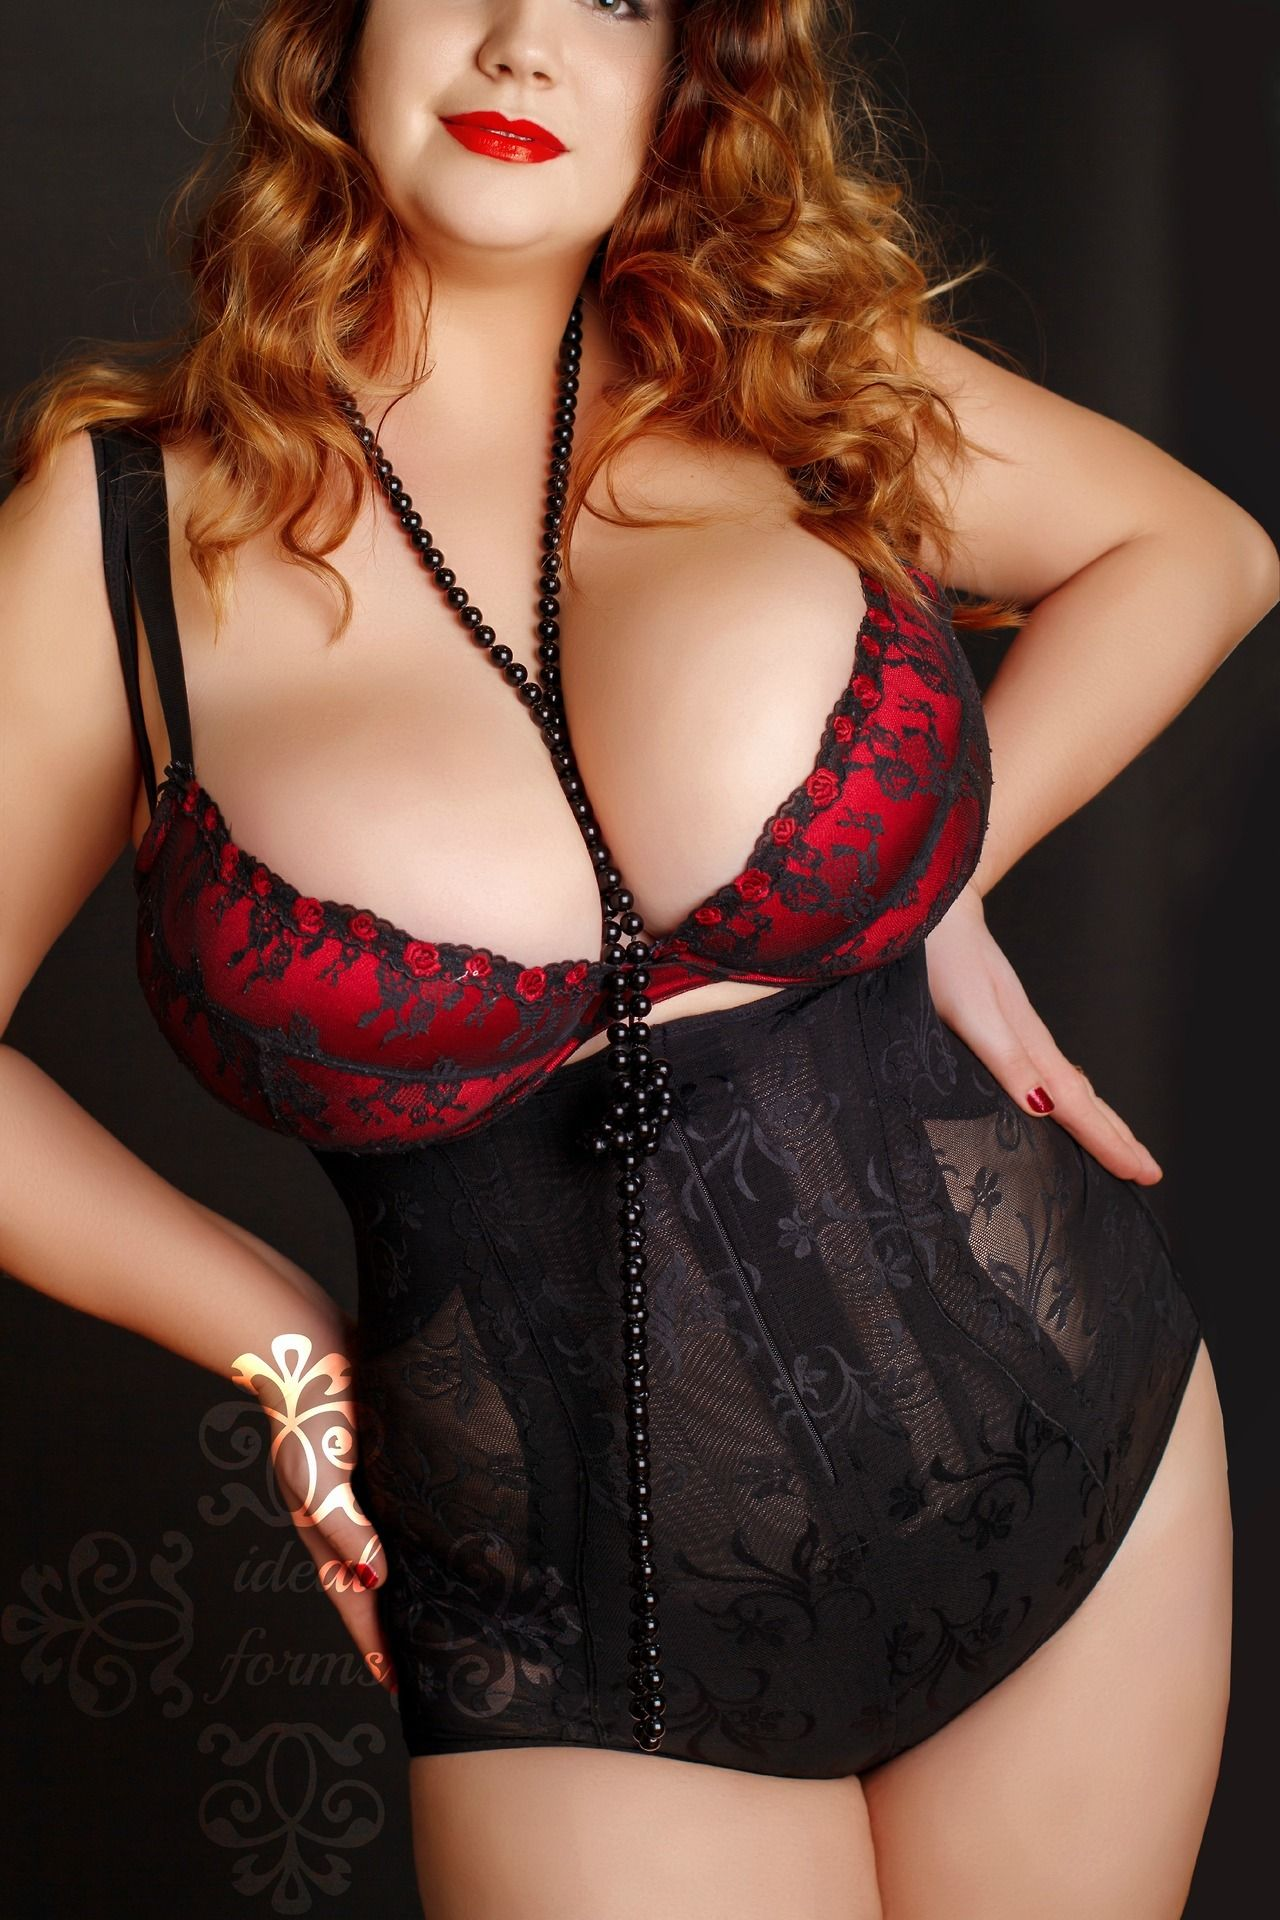 Curves In Lingerie #Girl #Women #Curves #Lingerie